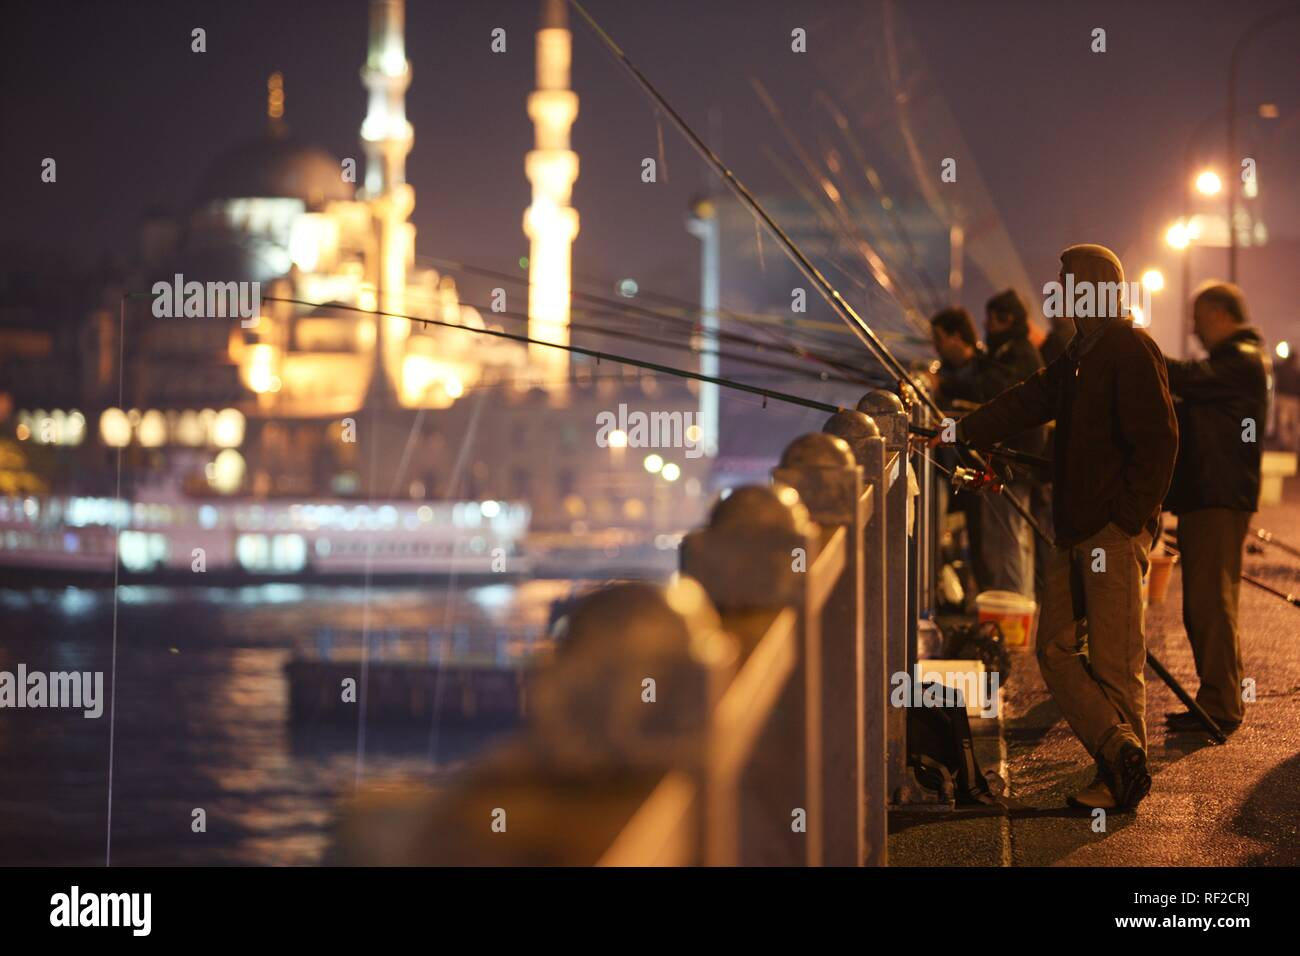 Fishermen at Galata Bridge over the Golden Horn, two-storied road bridge, traffic above, bars and restaurants below, Istanbul - Stock Image